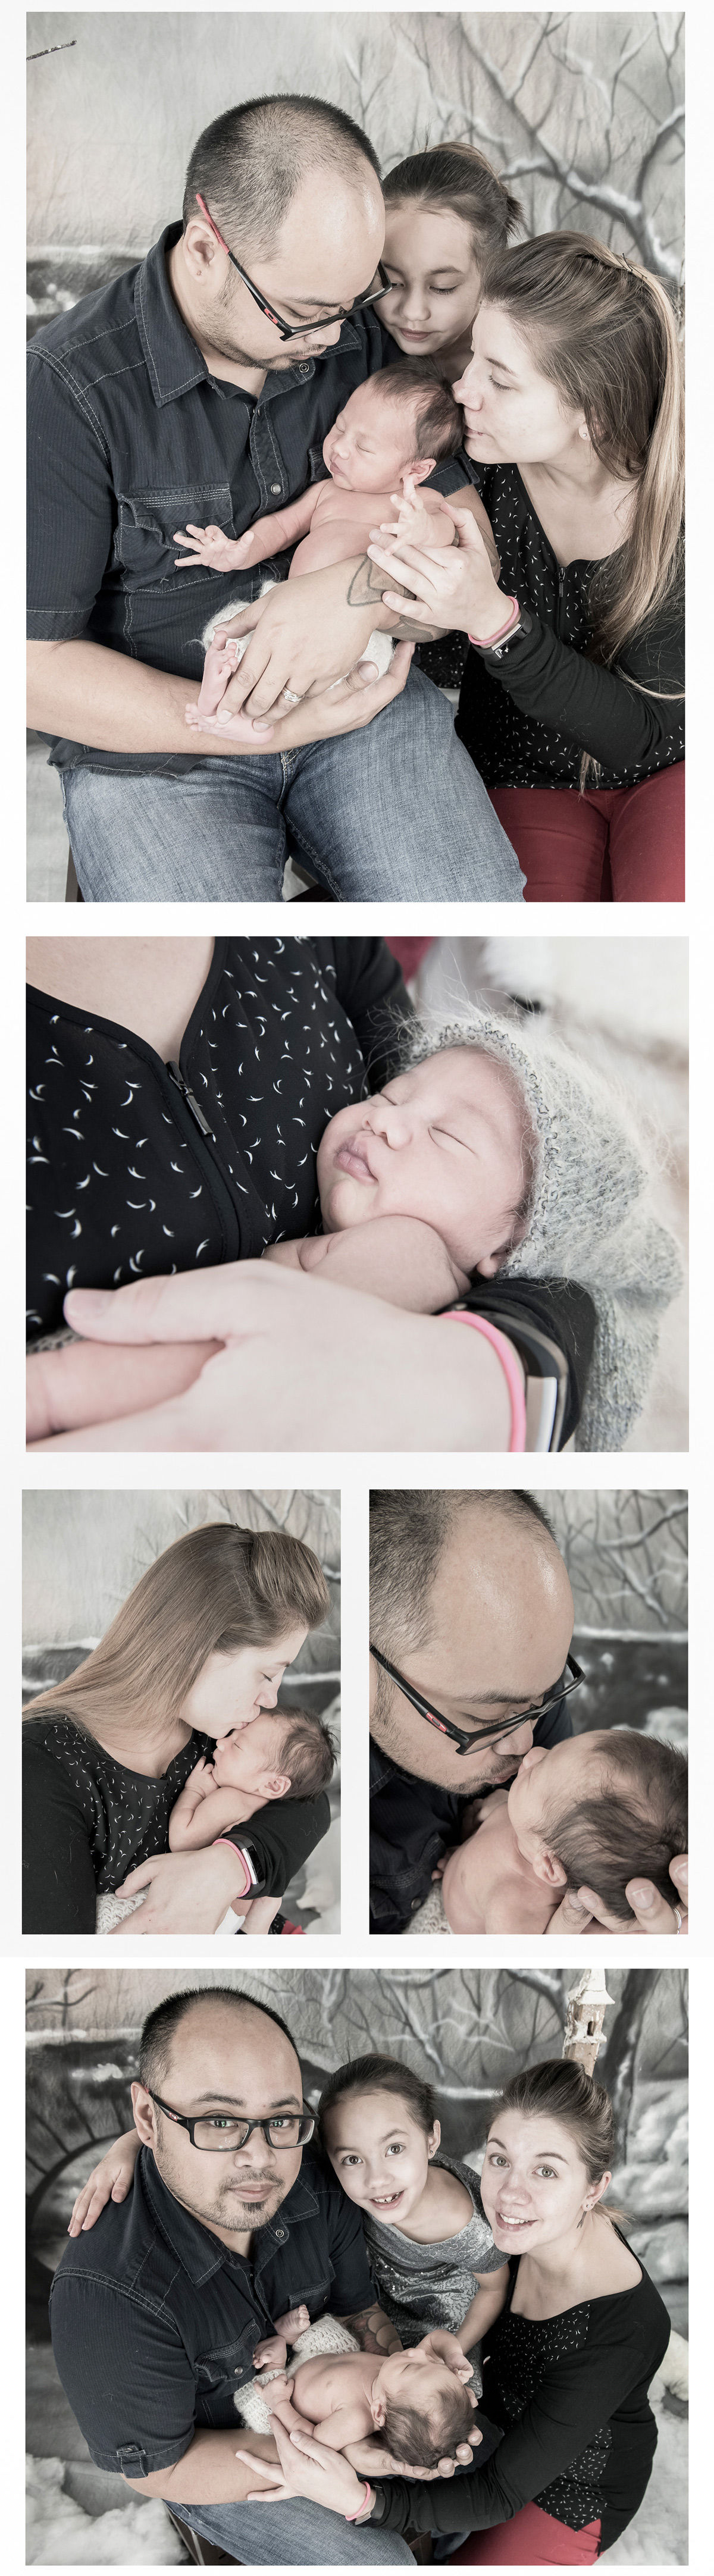 family-newborn-love-photo-ideas-free-lense-photo.jpg